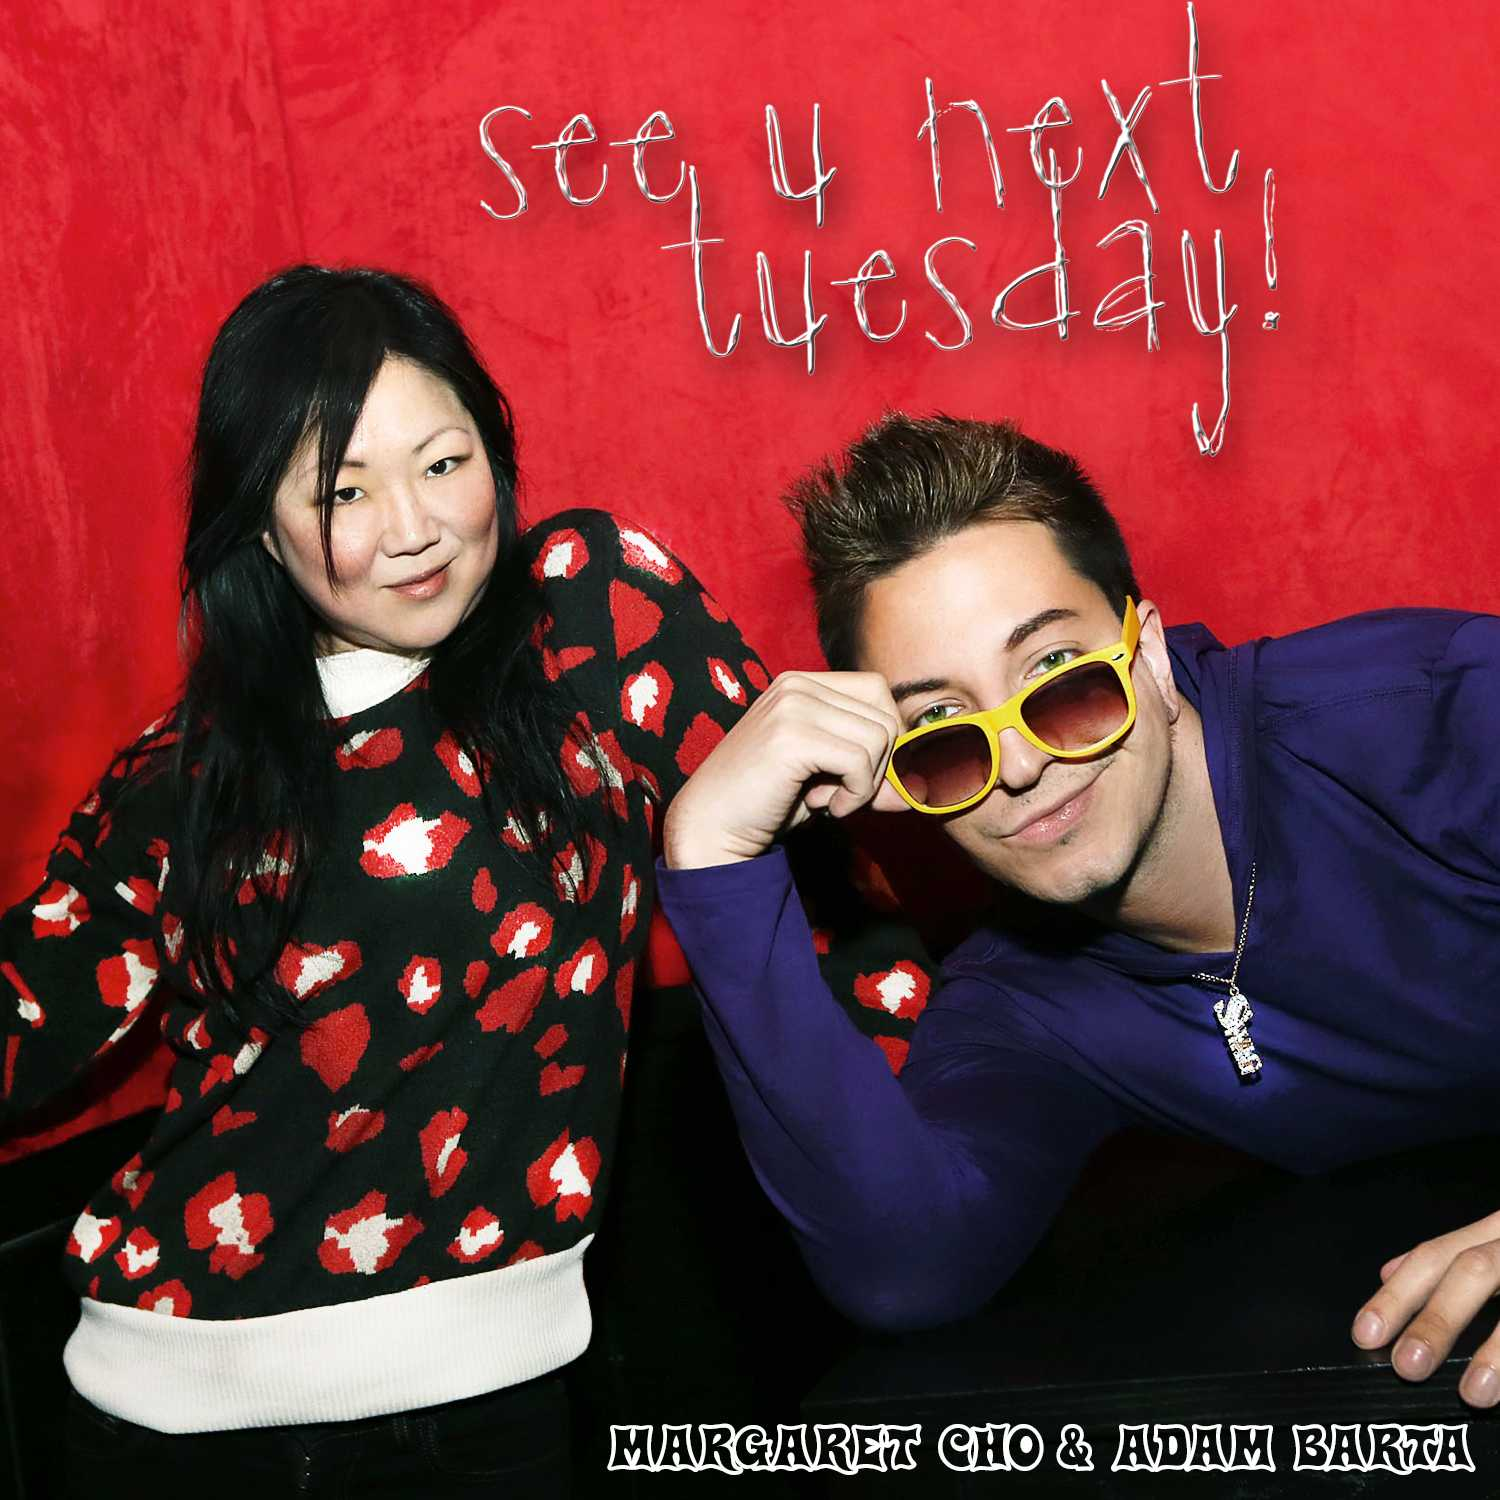 Margaret Cho And Adam Barta Like Big Butts And They'll See U Next Tuesday With New Single